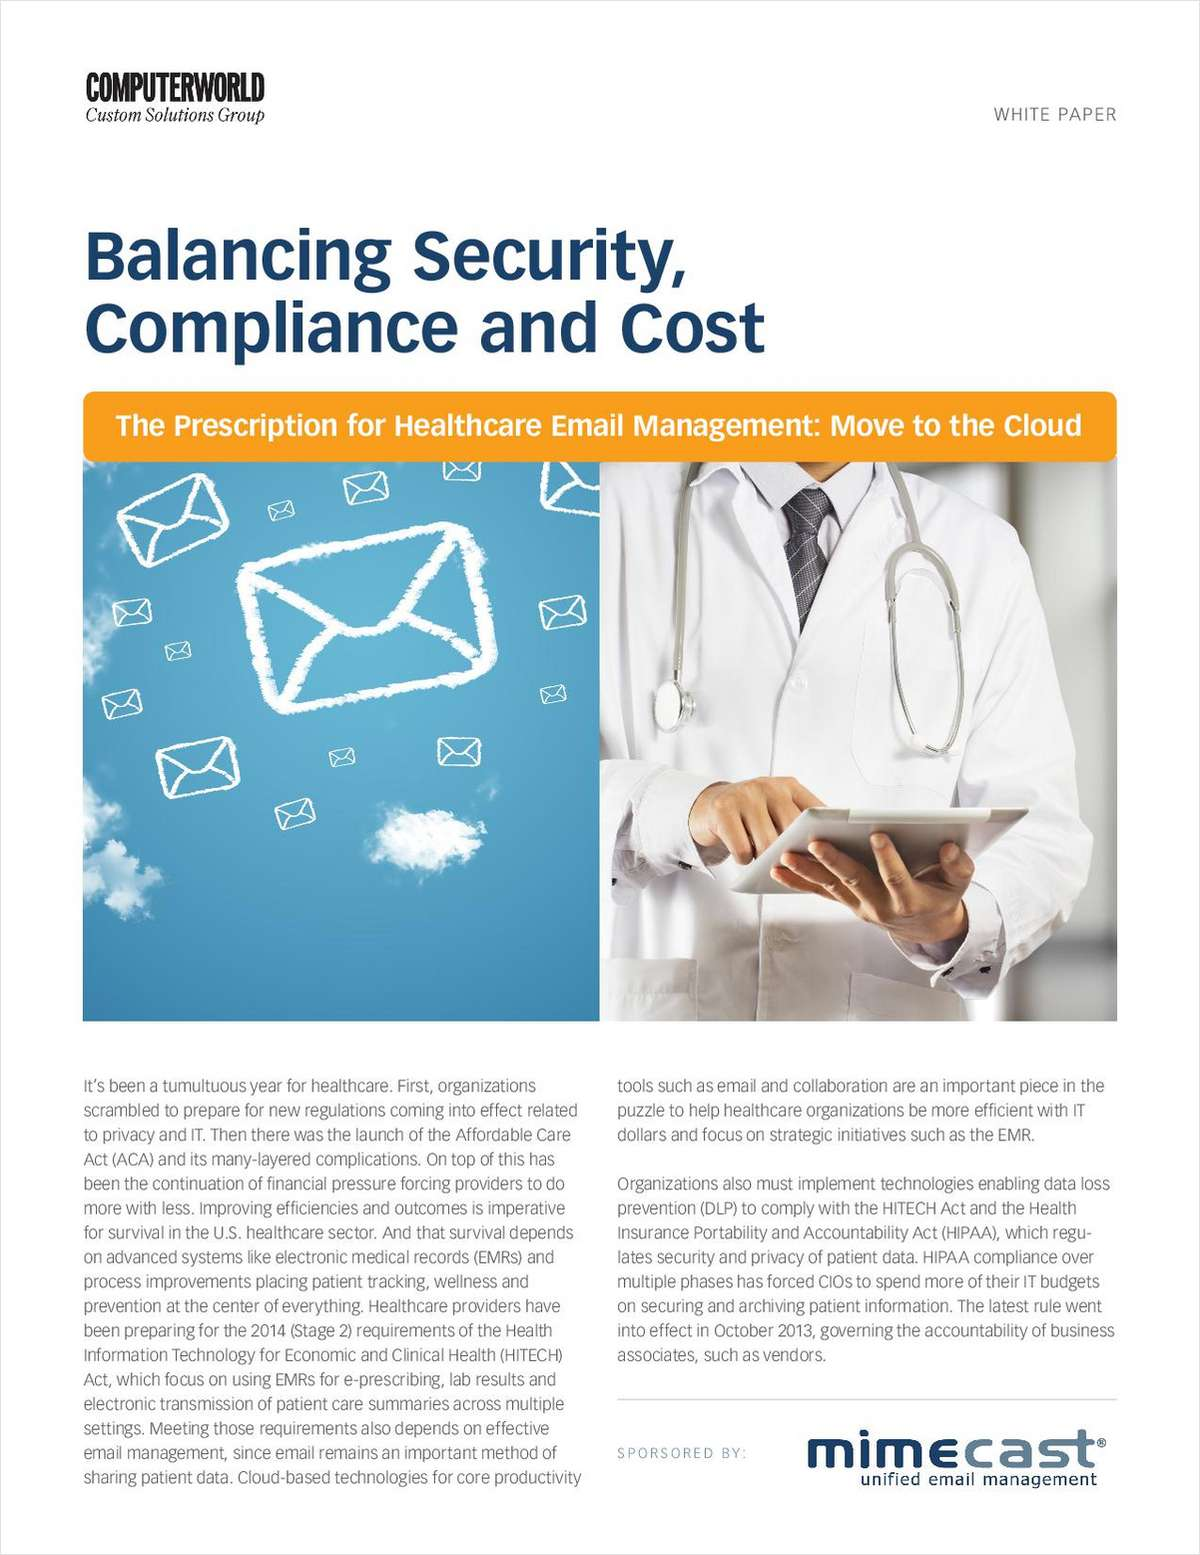 Security, Compliance, and Cost: A Productive Balancing Act